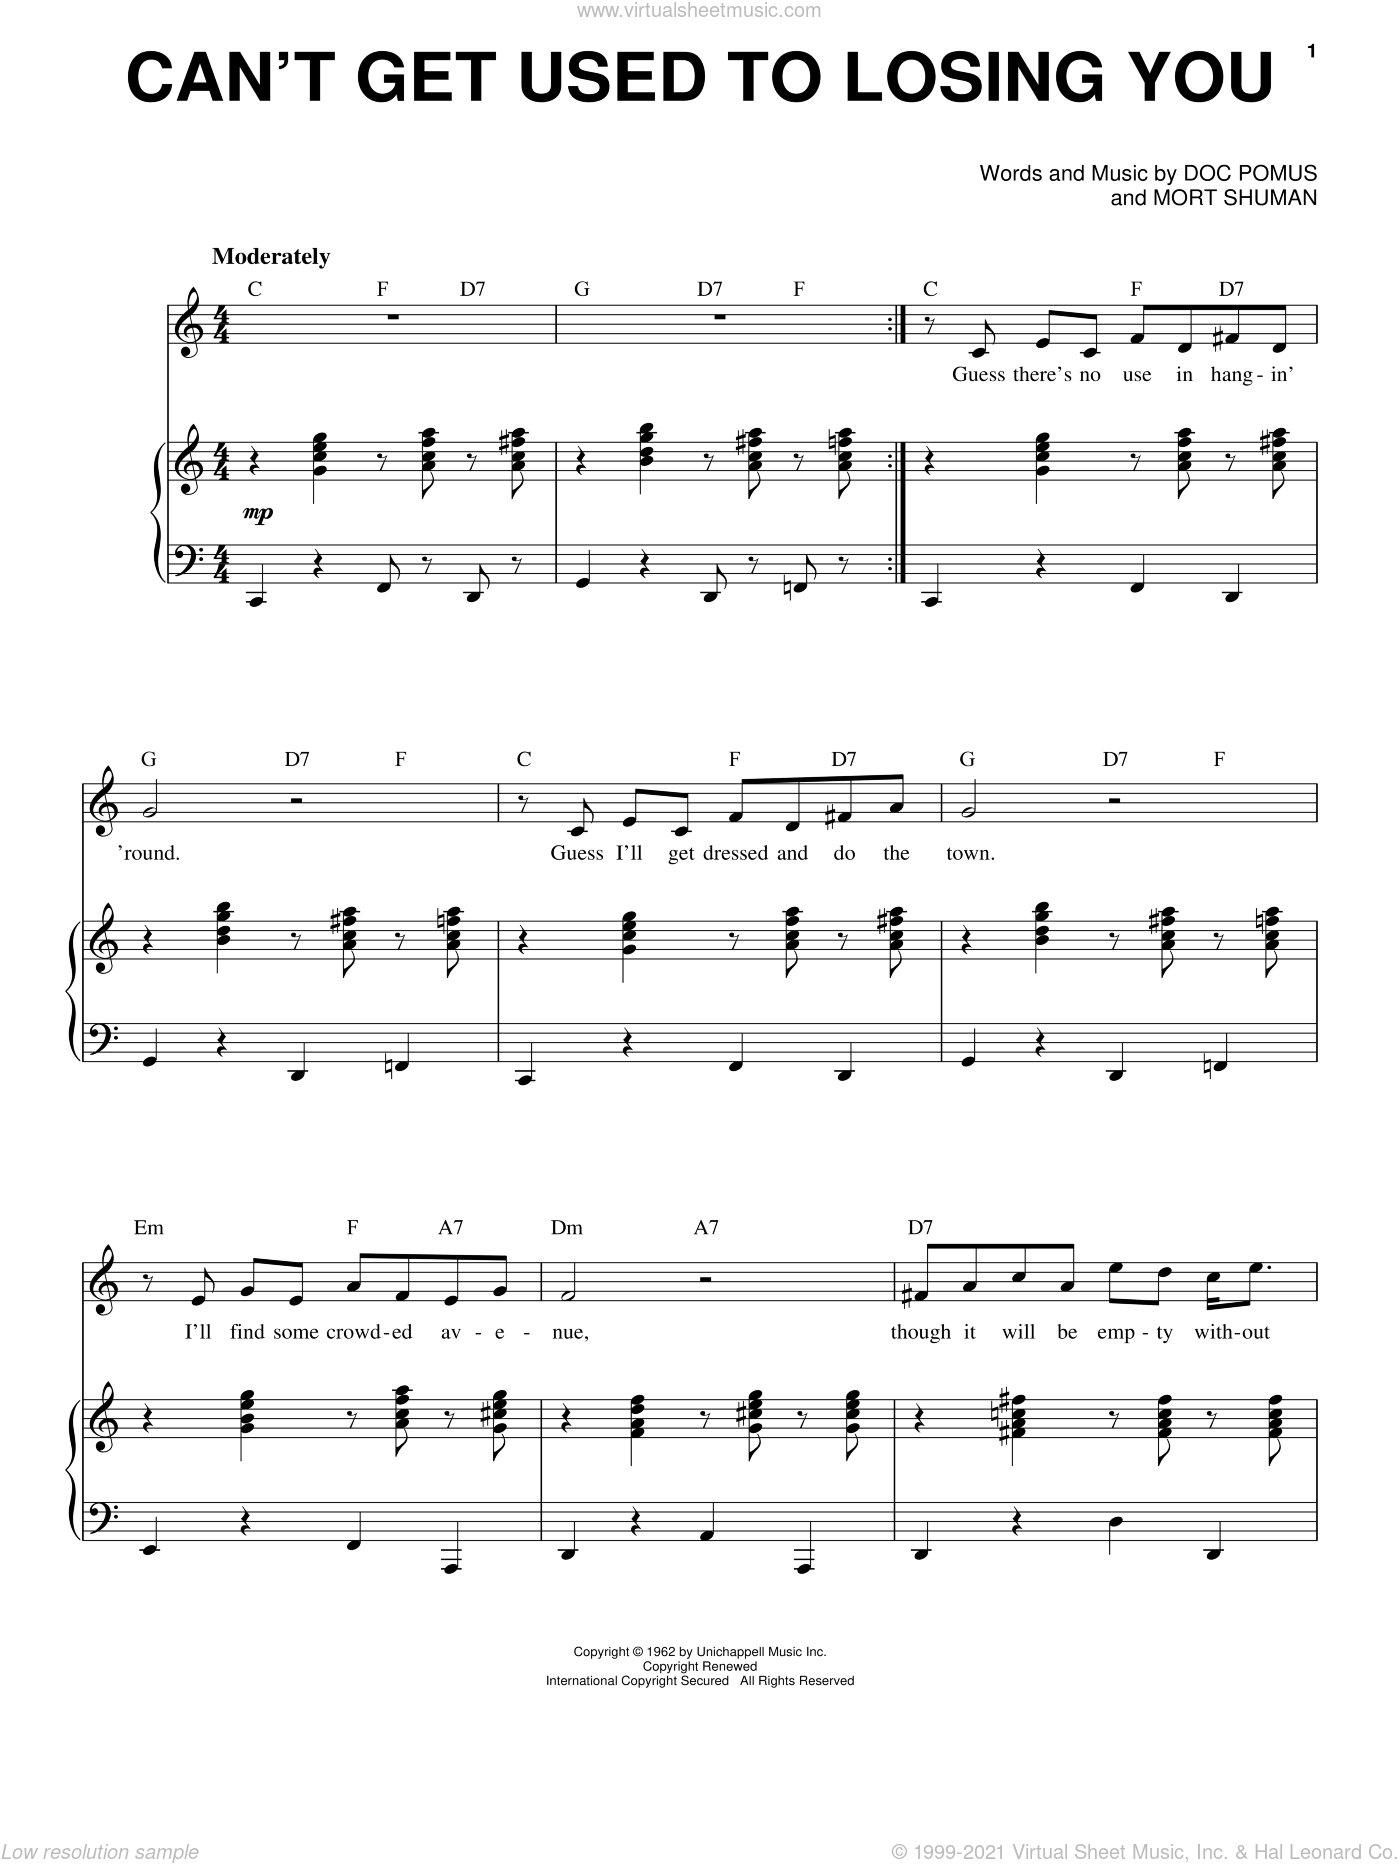 Can't Get Used To Losing You sheet music for voice and piano by Andy Williams, Doc Pomus, Jerome Pomus and Mort Shuman, intermediate skill level